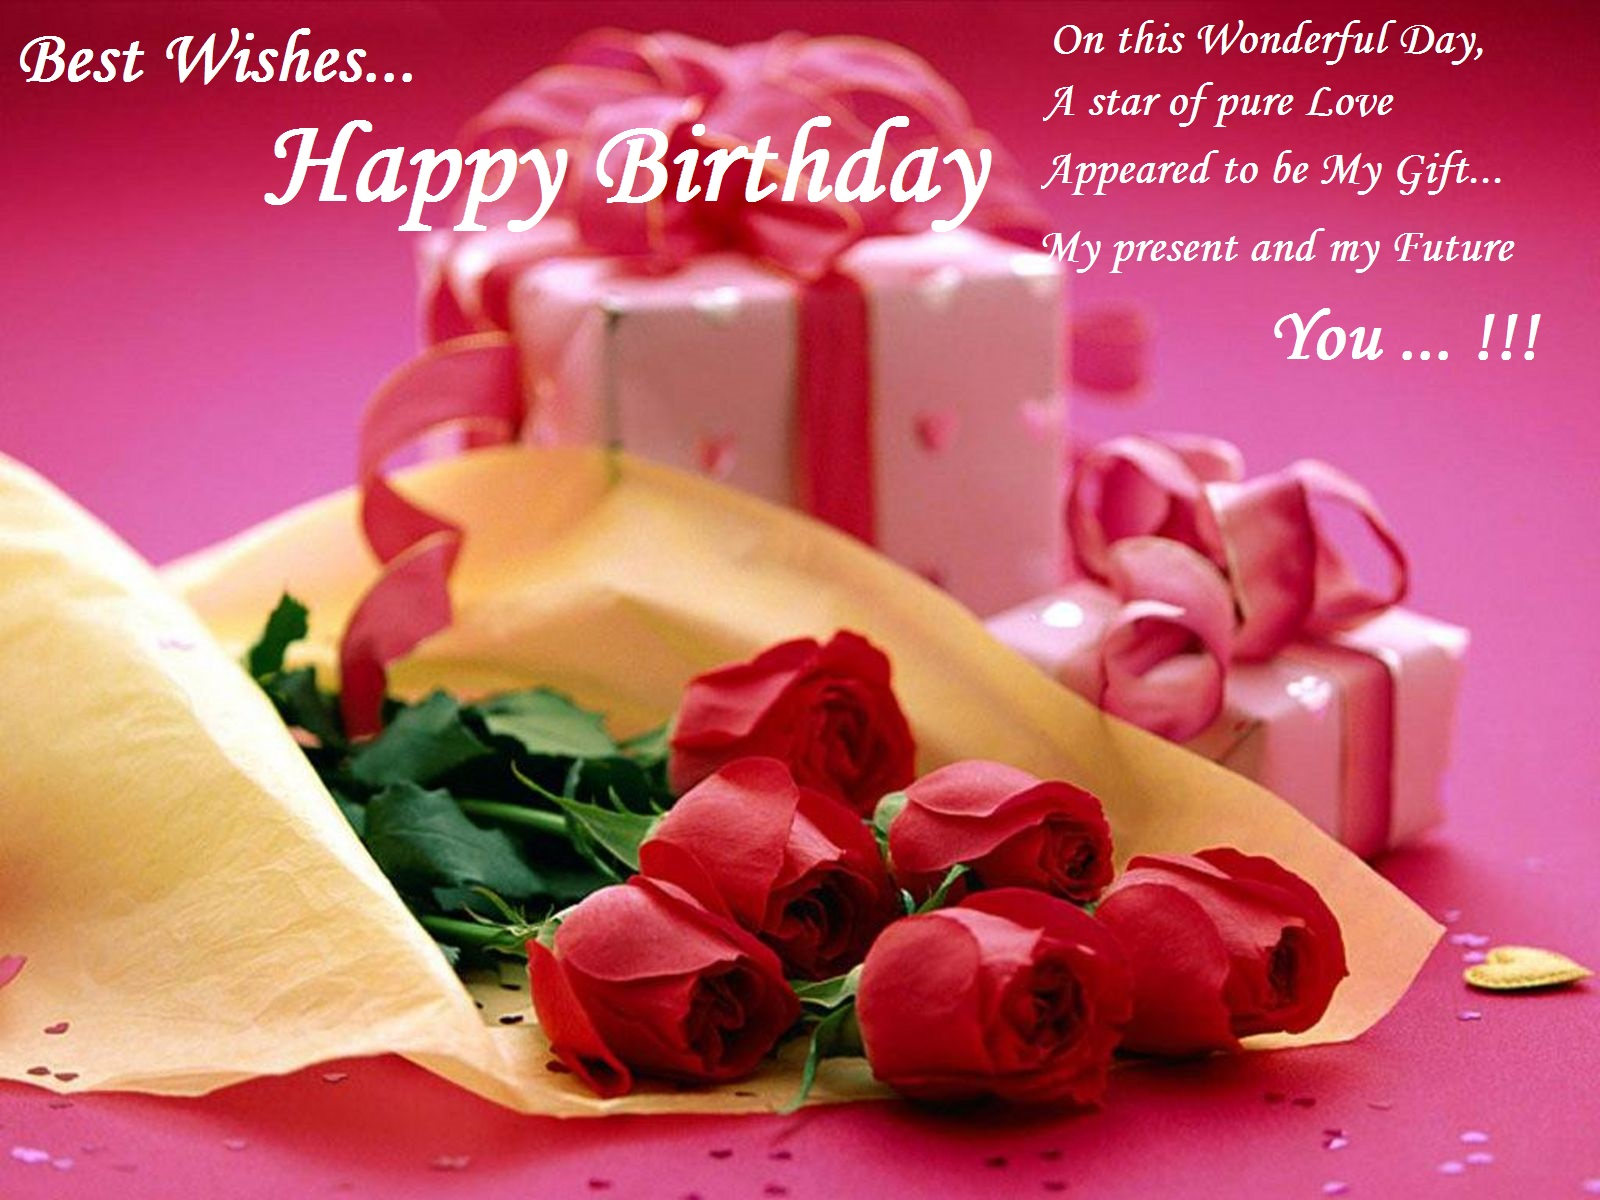 Best Wishes Happy Birthday On This Wonderful Day A Star Of Pure Happy Birthday Wishes For Lovely Friend